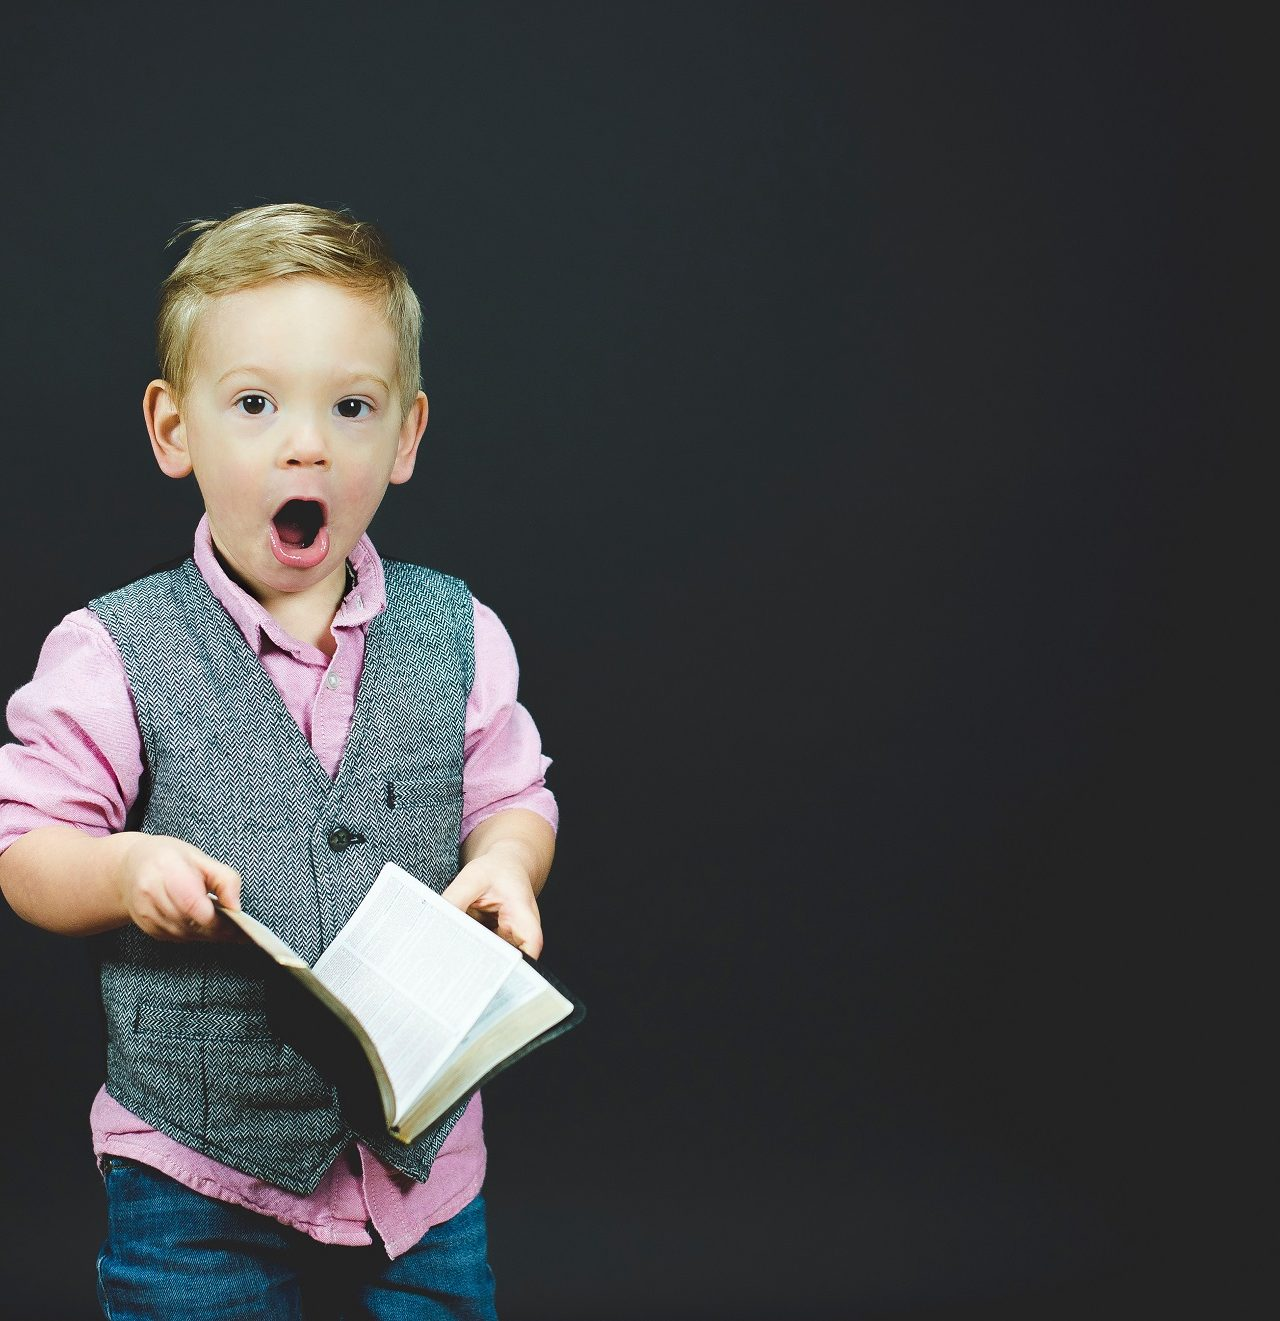 Surprised Child: Responses that Allow Growth